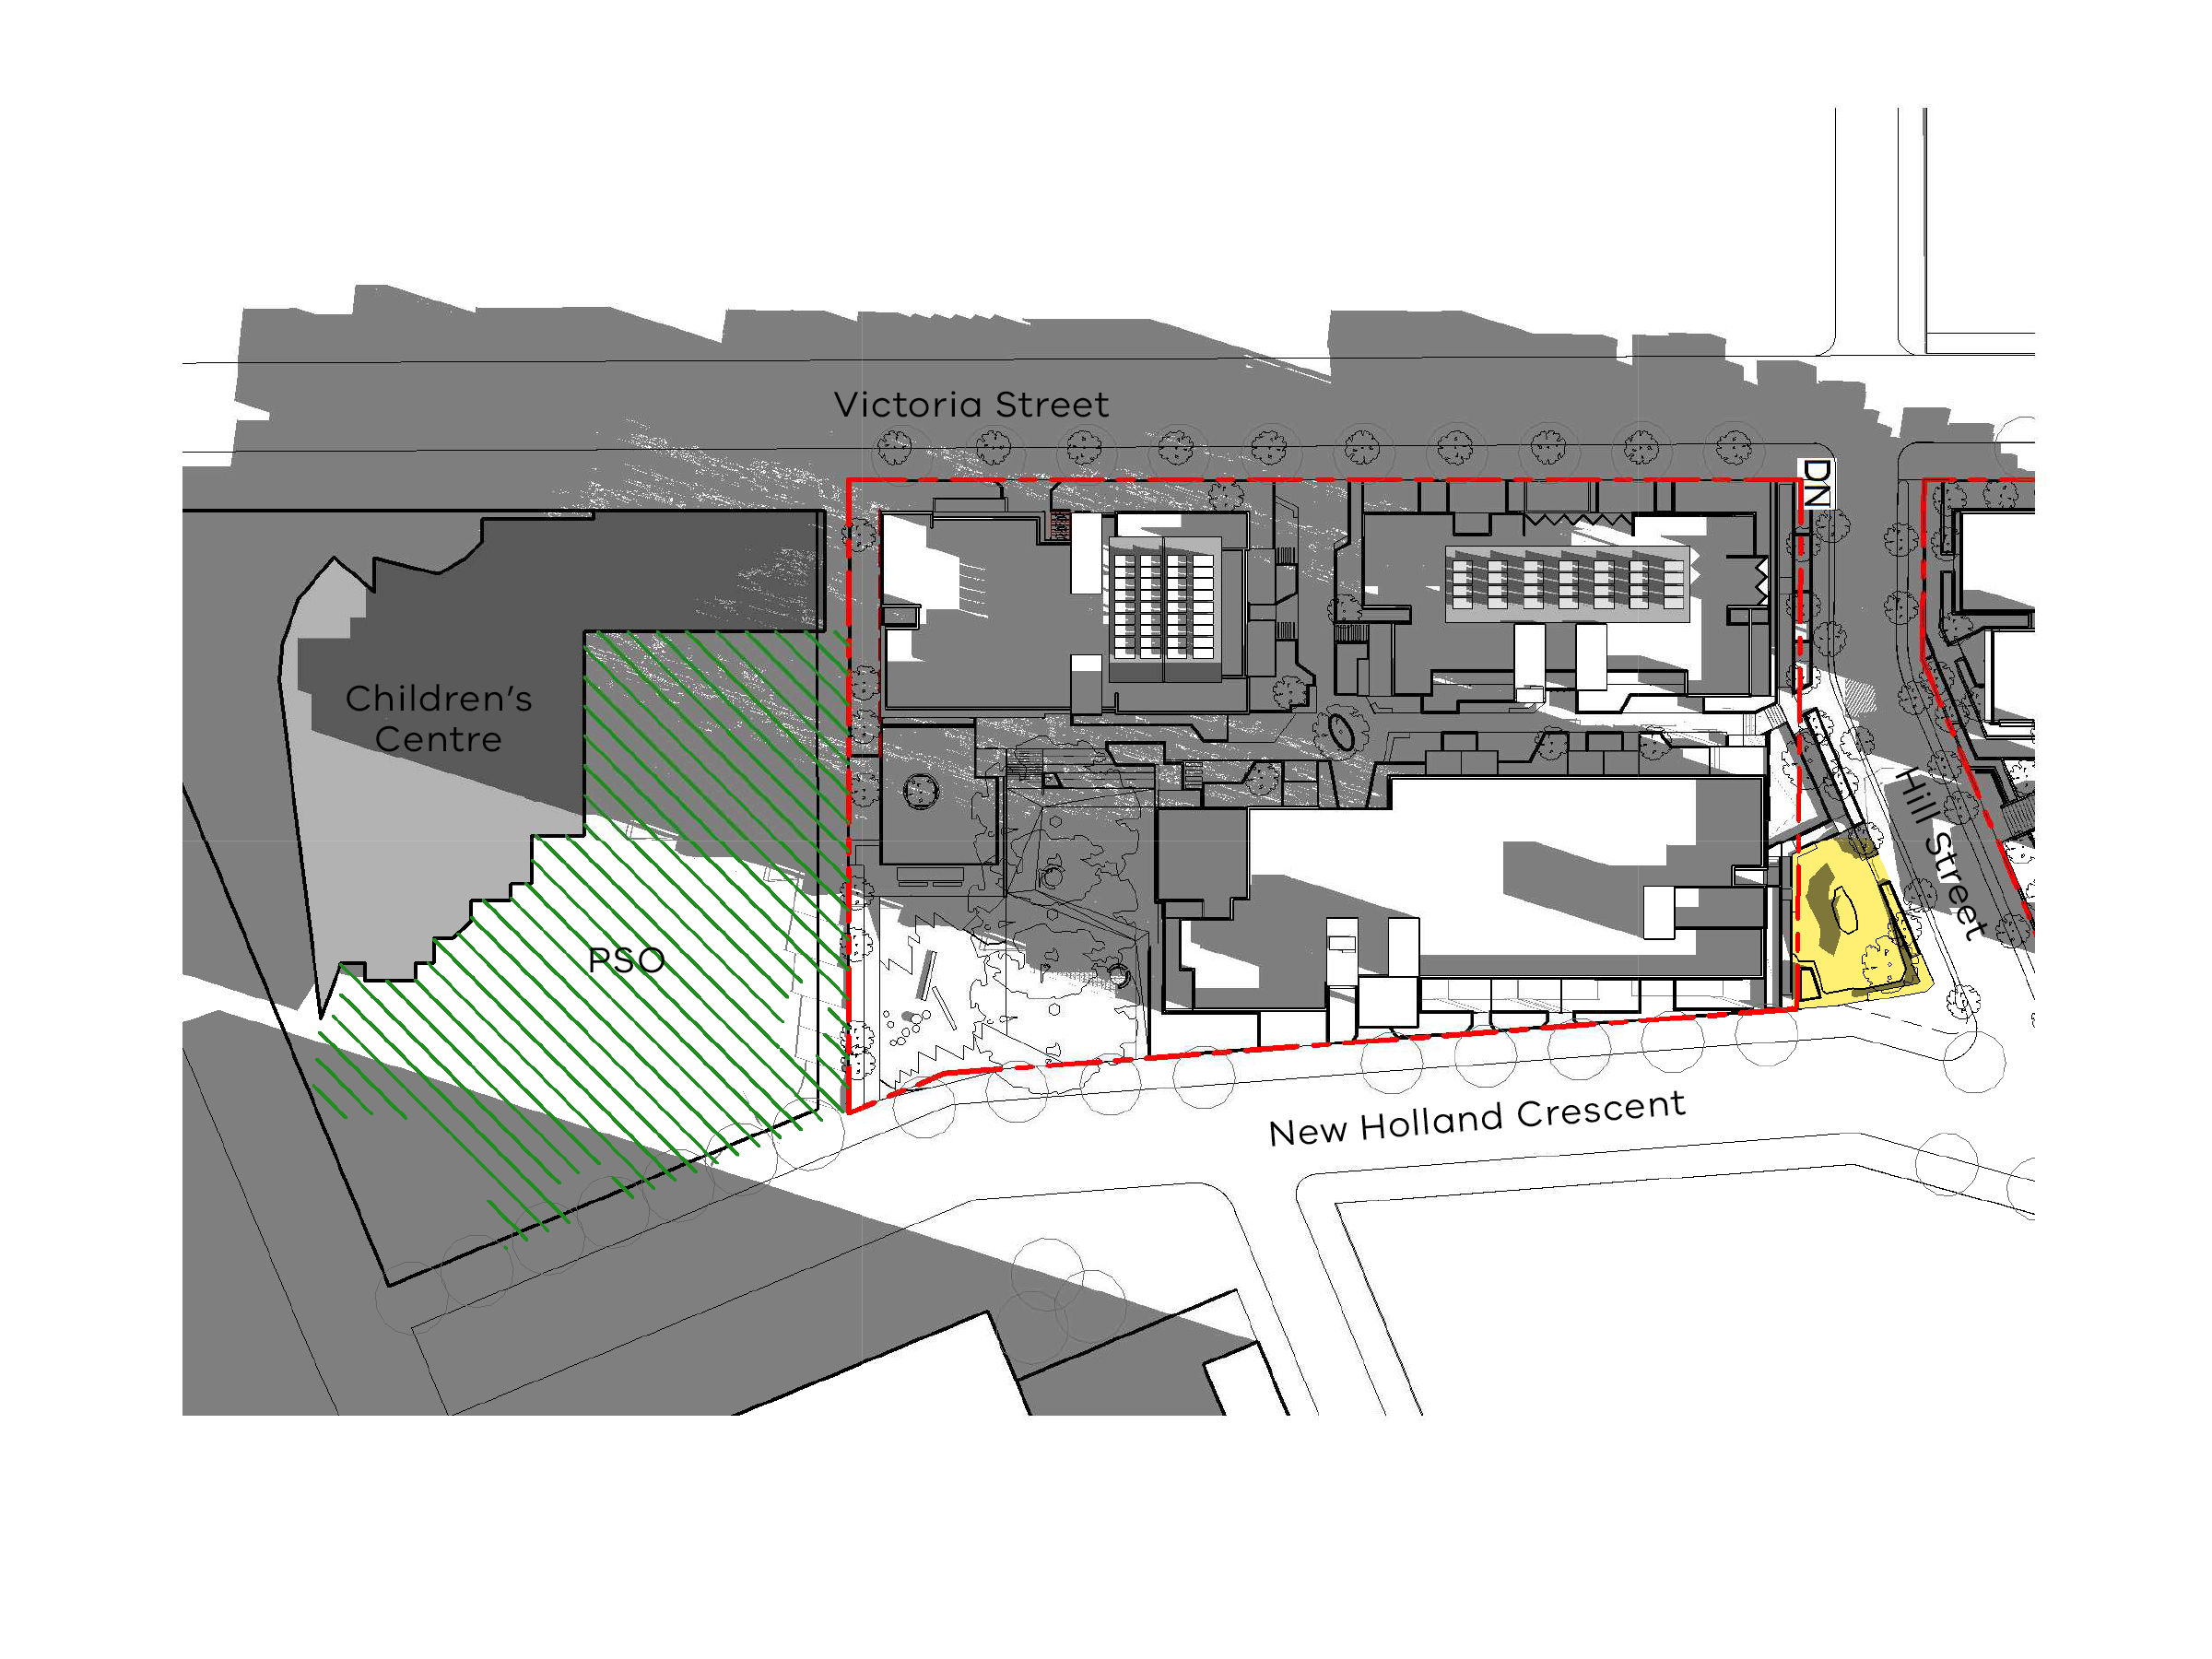 Diagram showing the shadows created by the south site of the new development in June at 9am